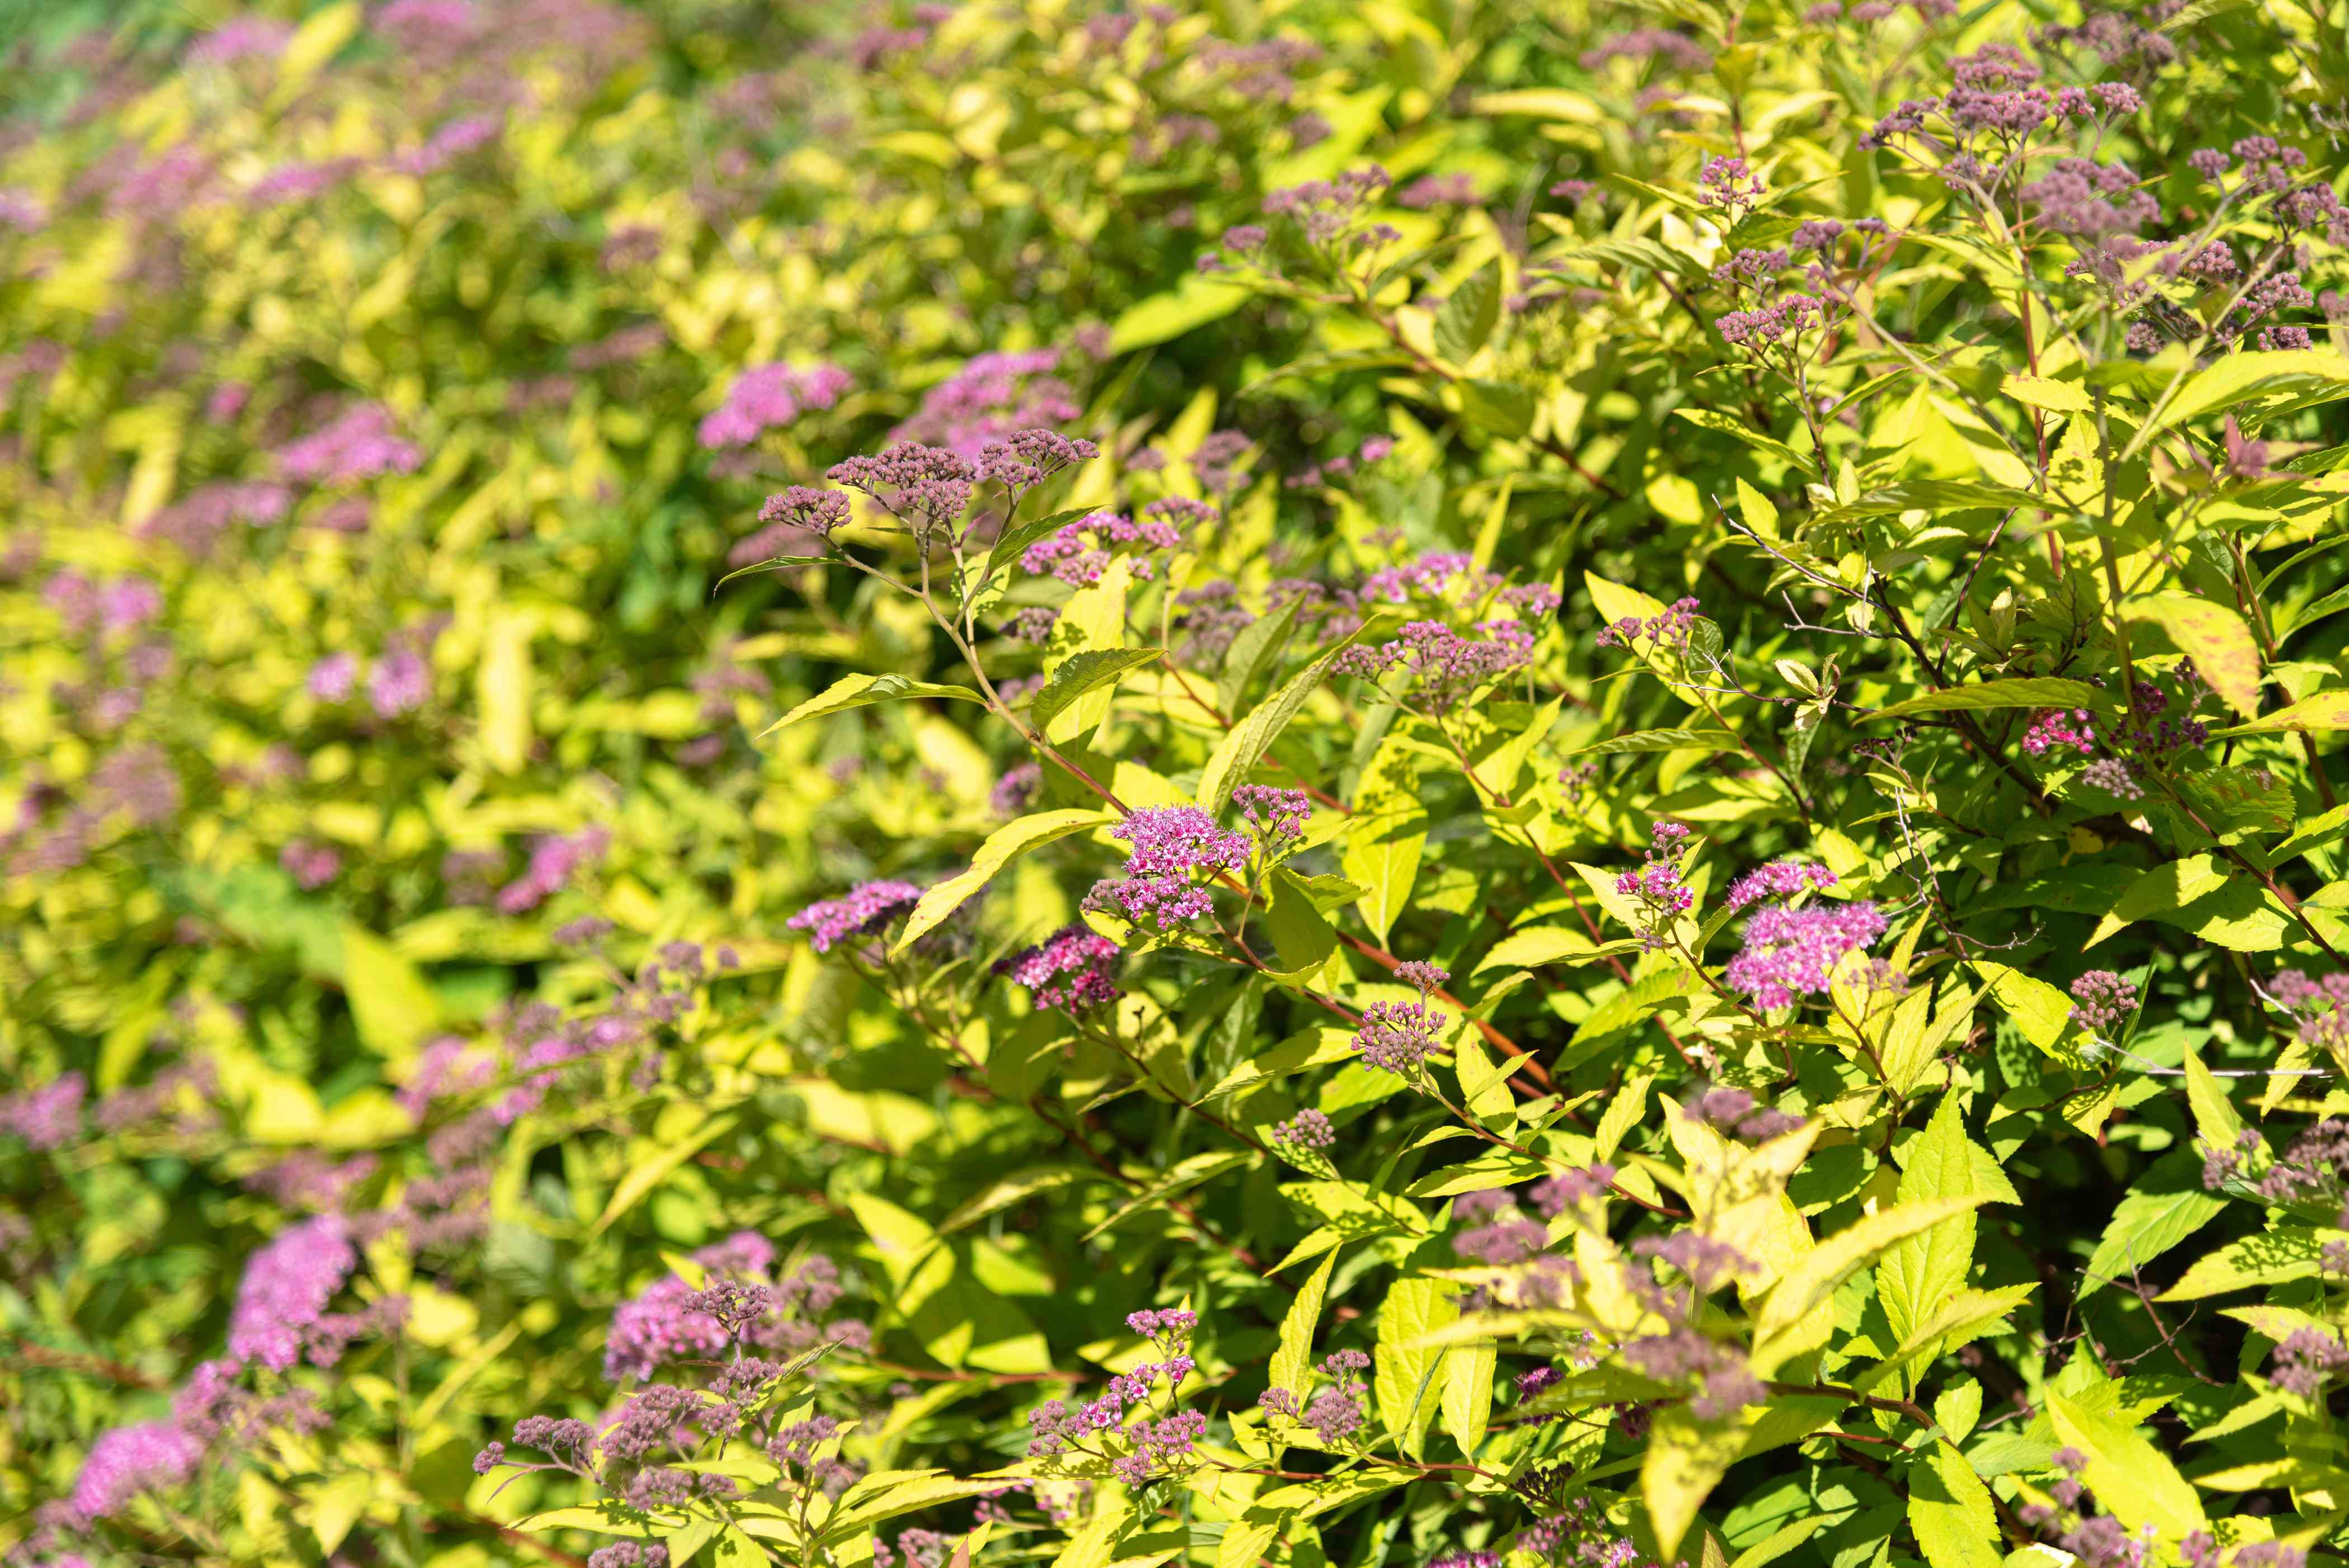 Gold mound spirea plant with golden pointed leaves and small pink flower clusters in sunlight closeup